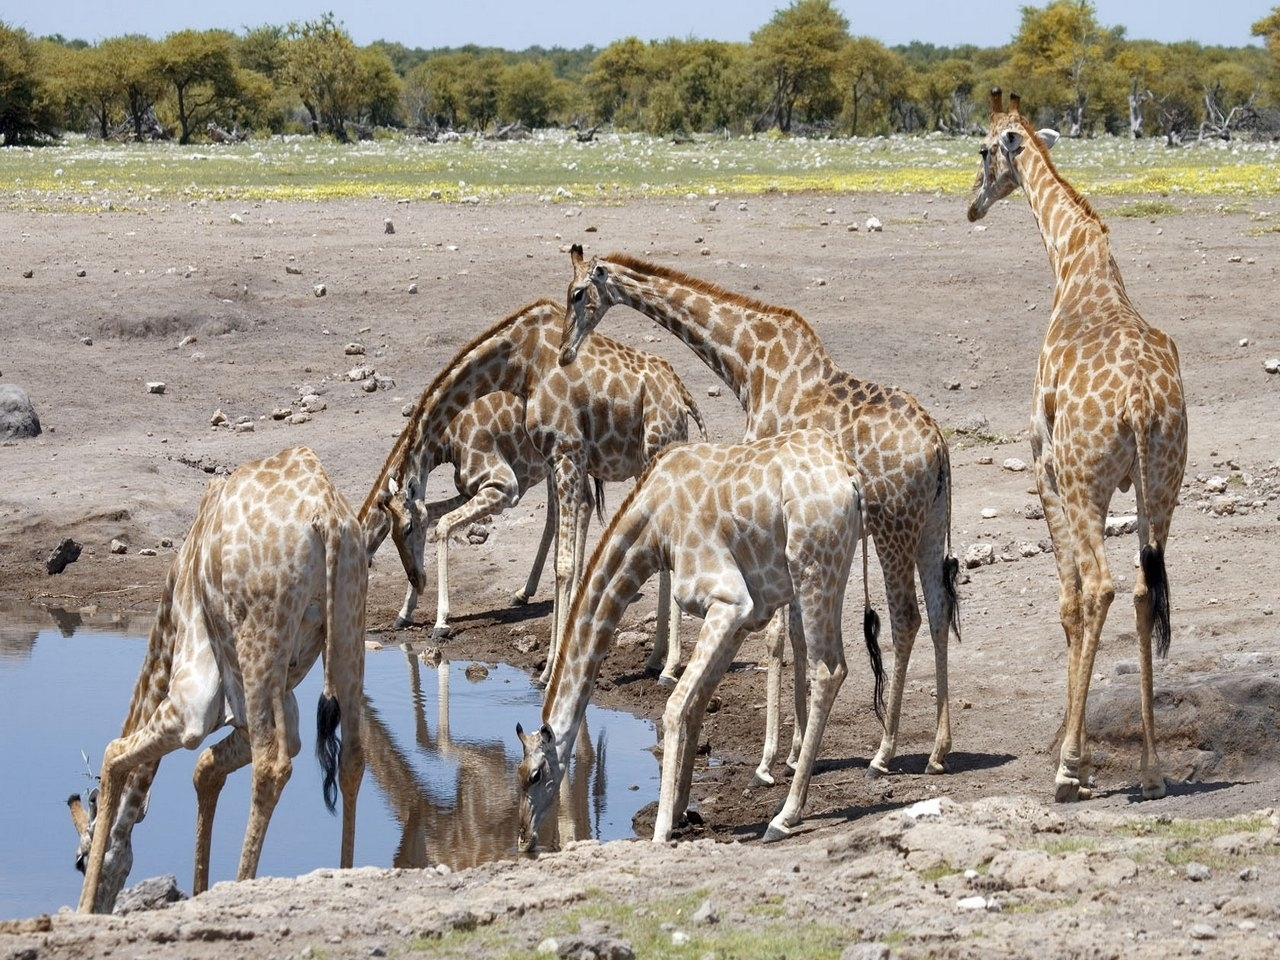 44845 download wallpaper Animals, Giraffes screensavers and pictures for free